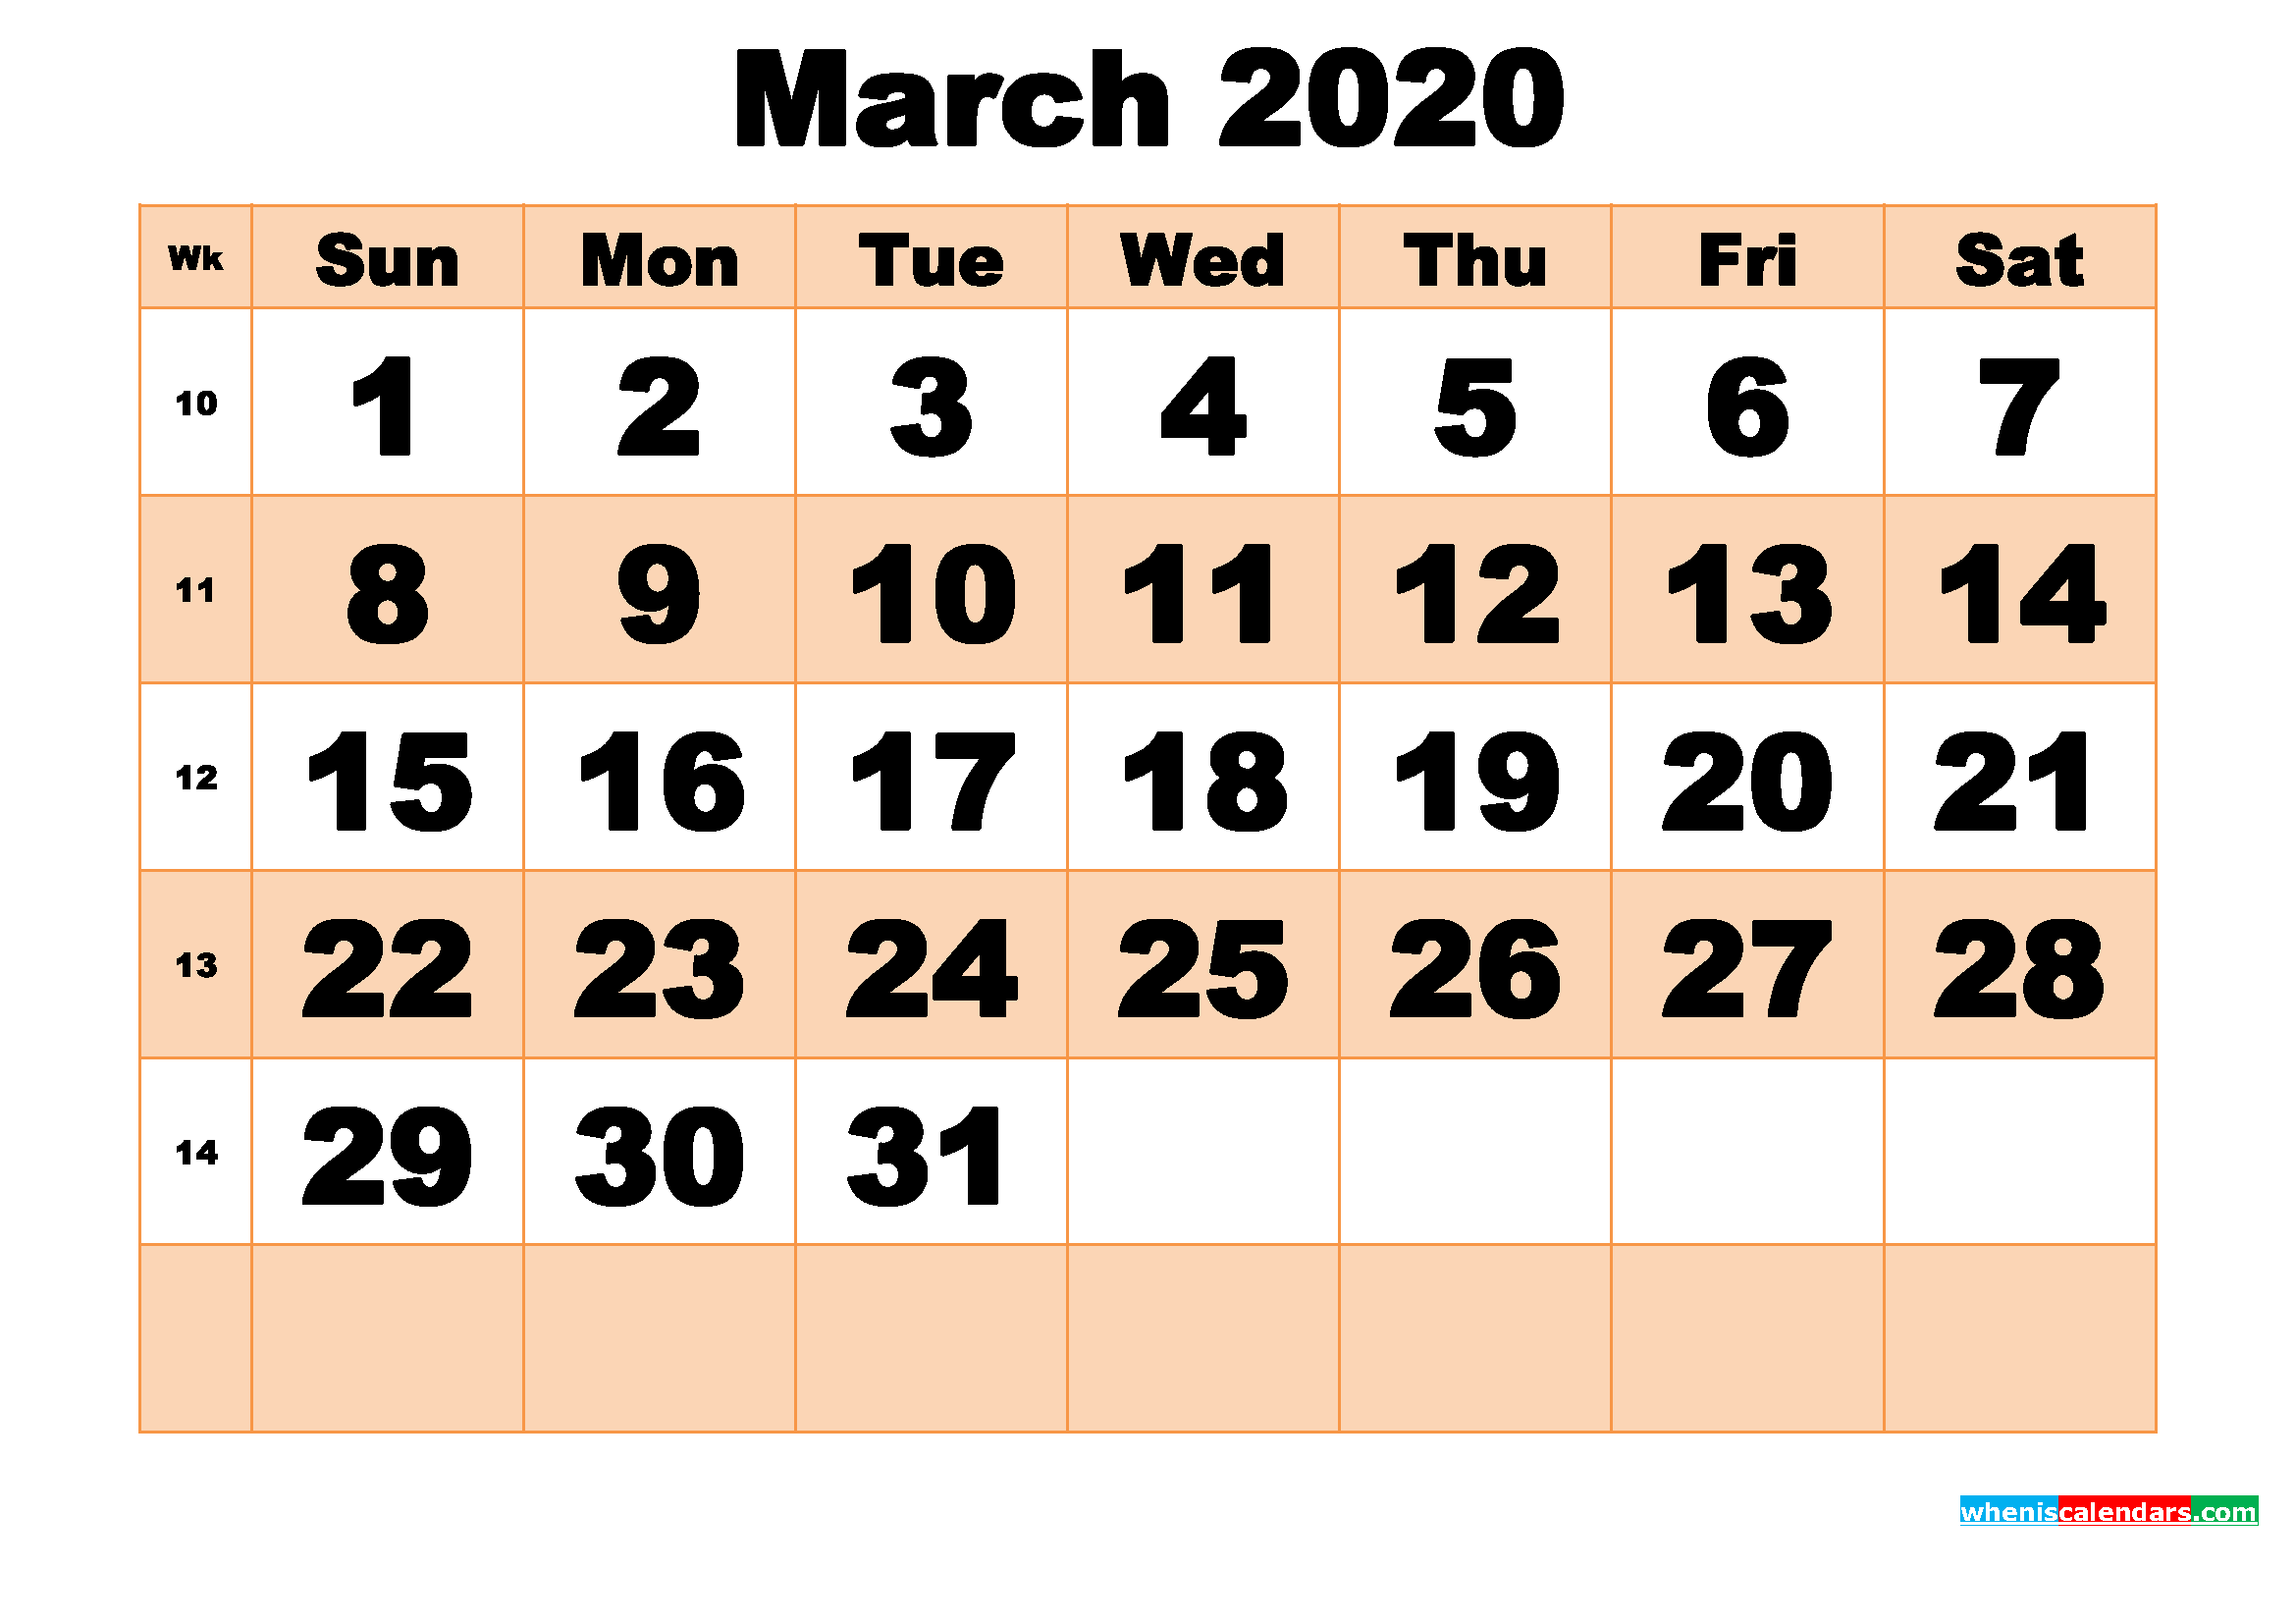 Free Printable March 2020 Calendar Template Word, PDF